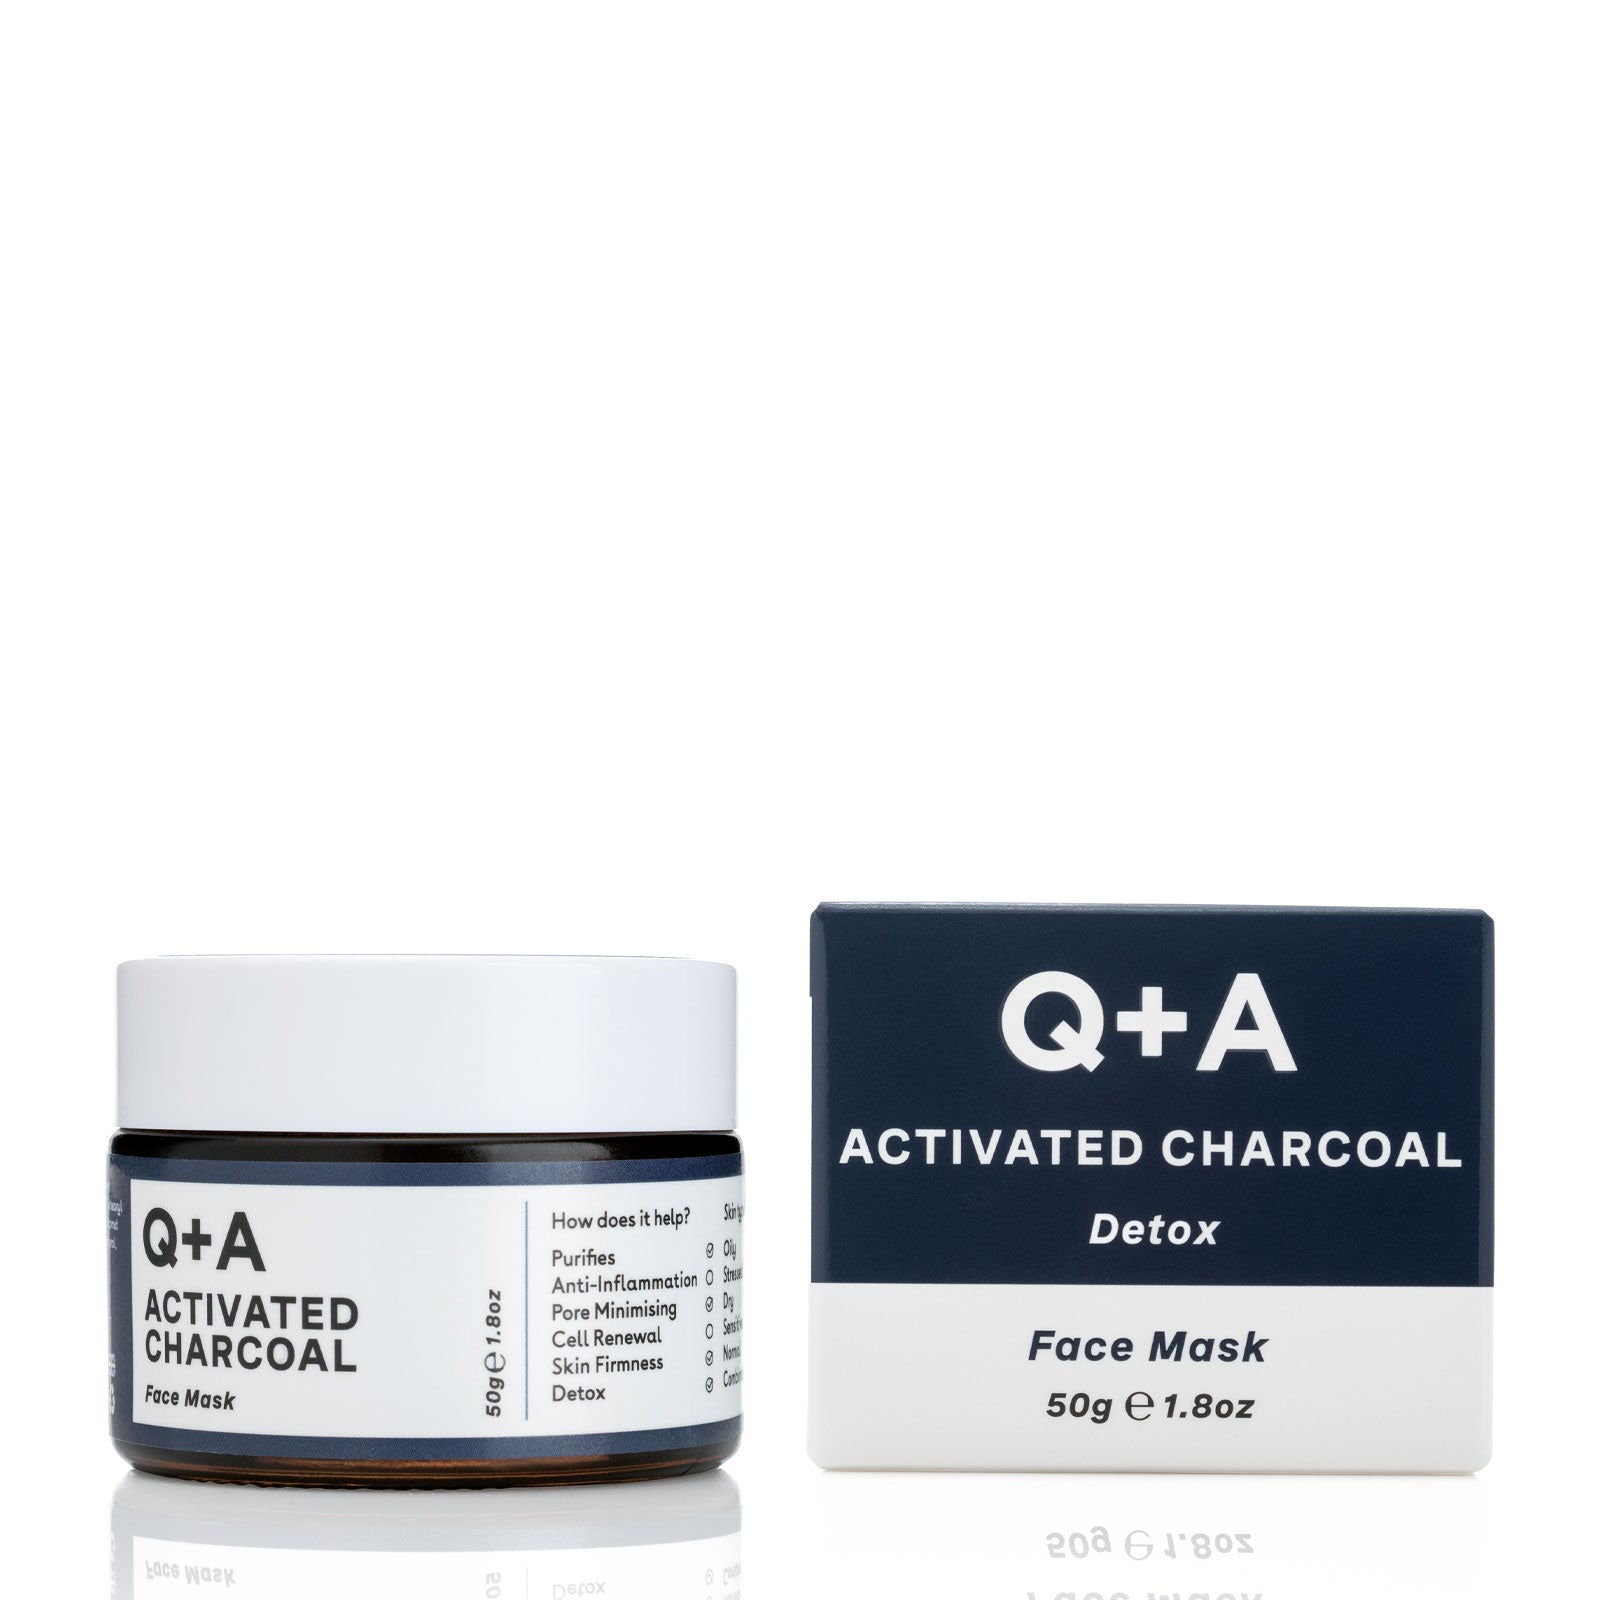 Q+A Activated Charcoal Face Mask 50g